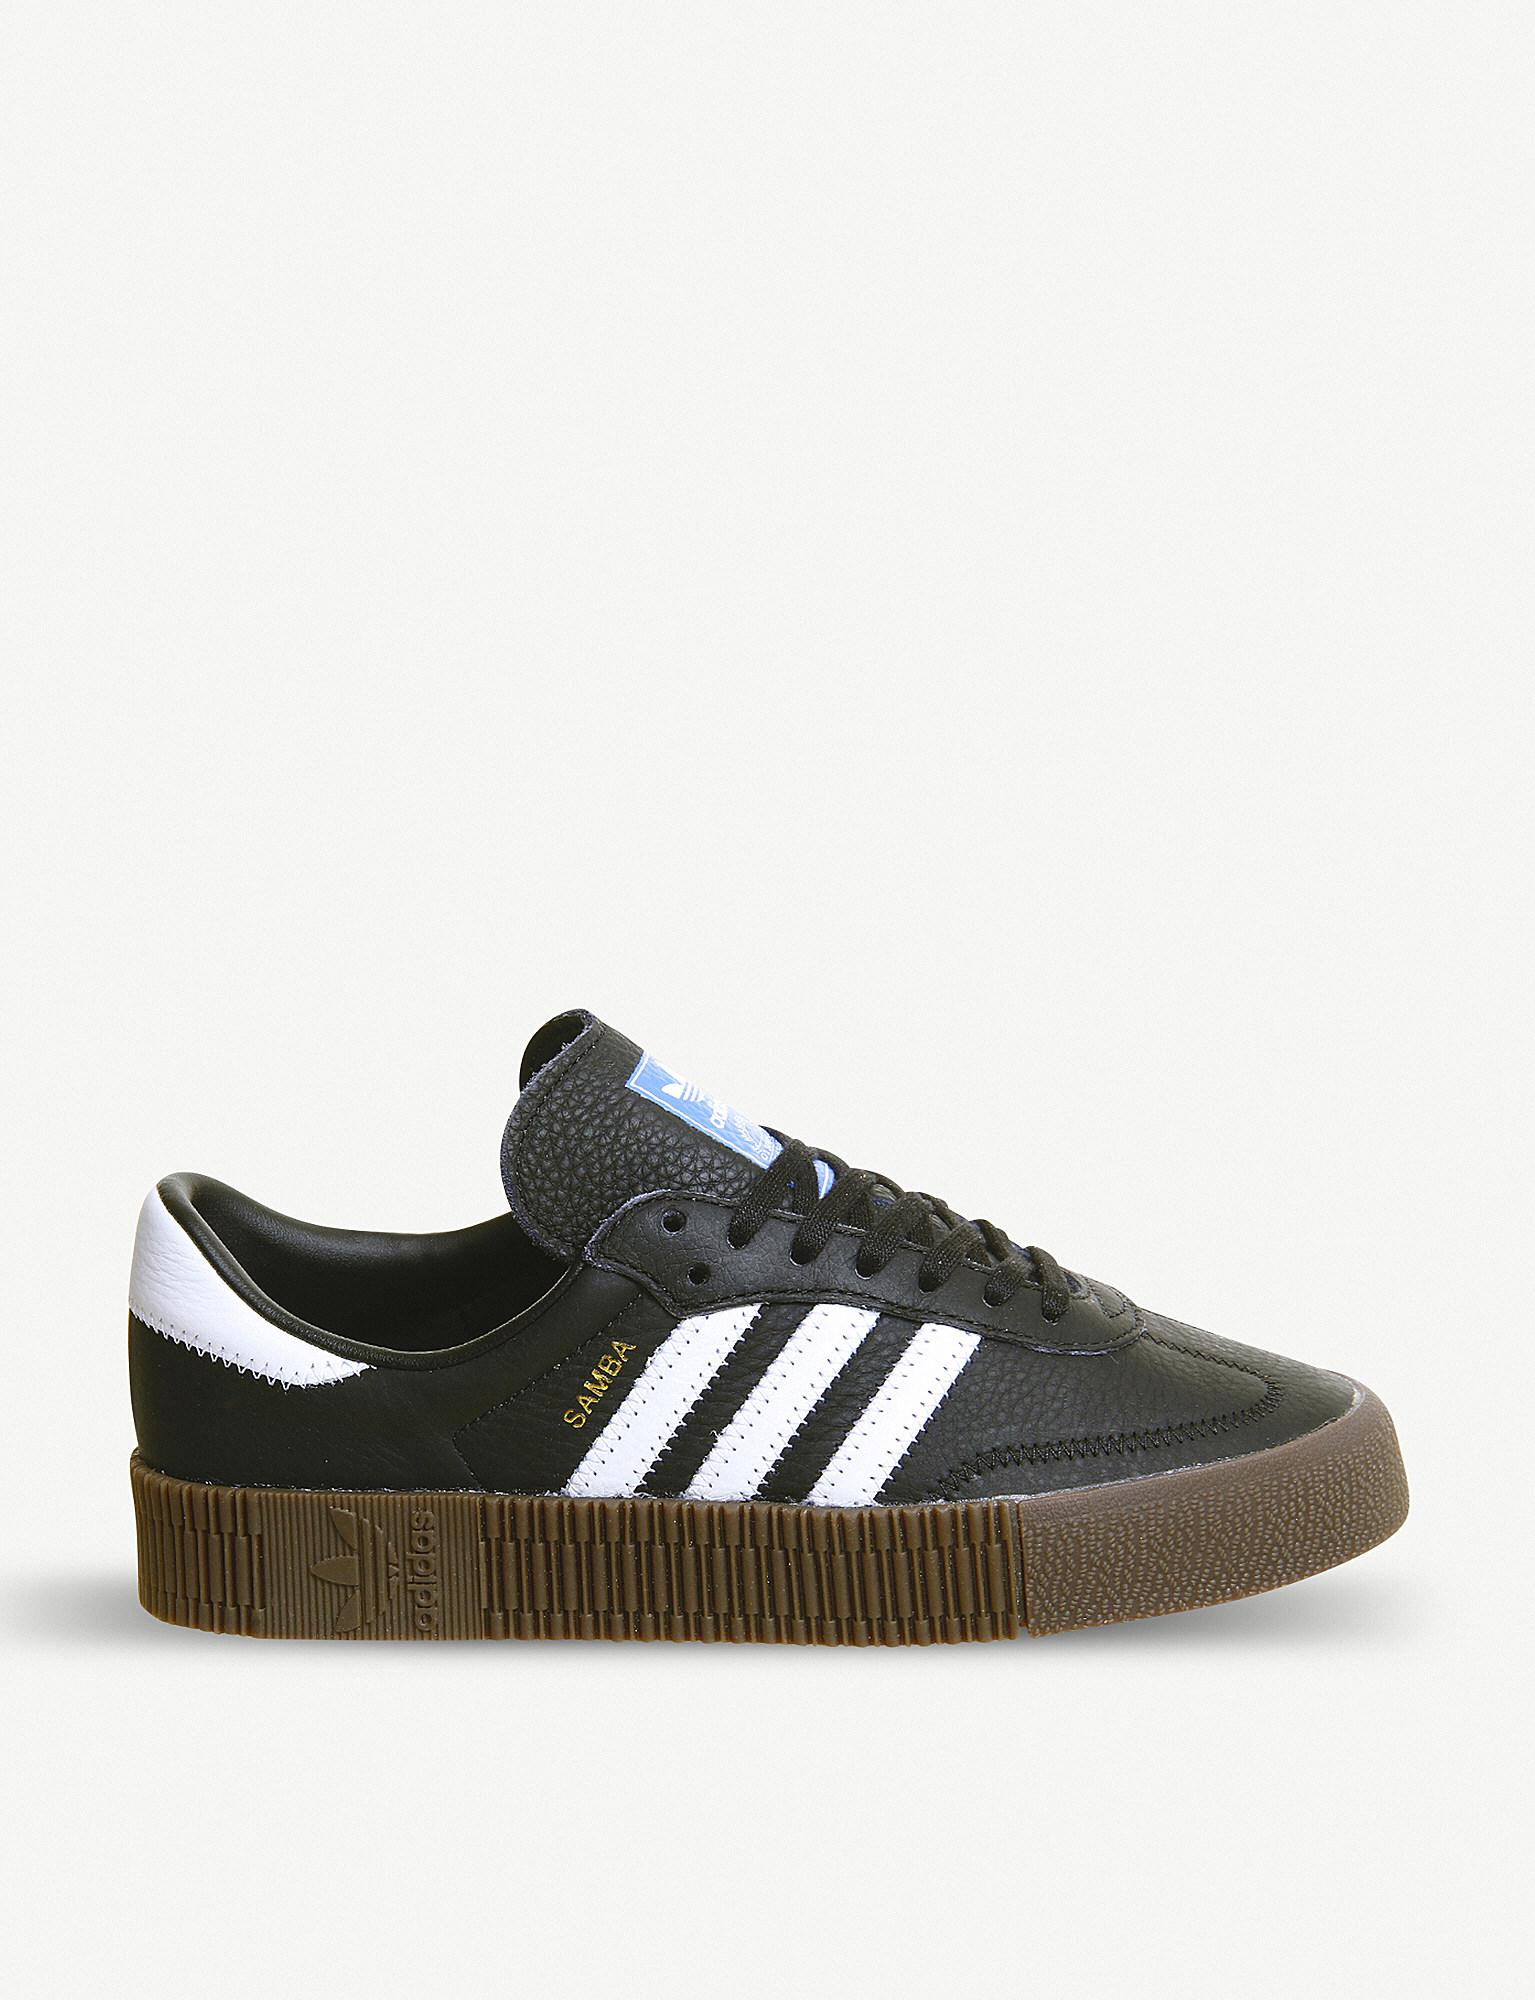 7563f134083 Lyst - adidas Black Sambarose Leather Sneakers in Black - Save 19%